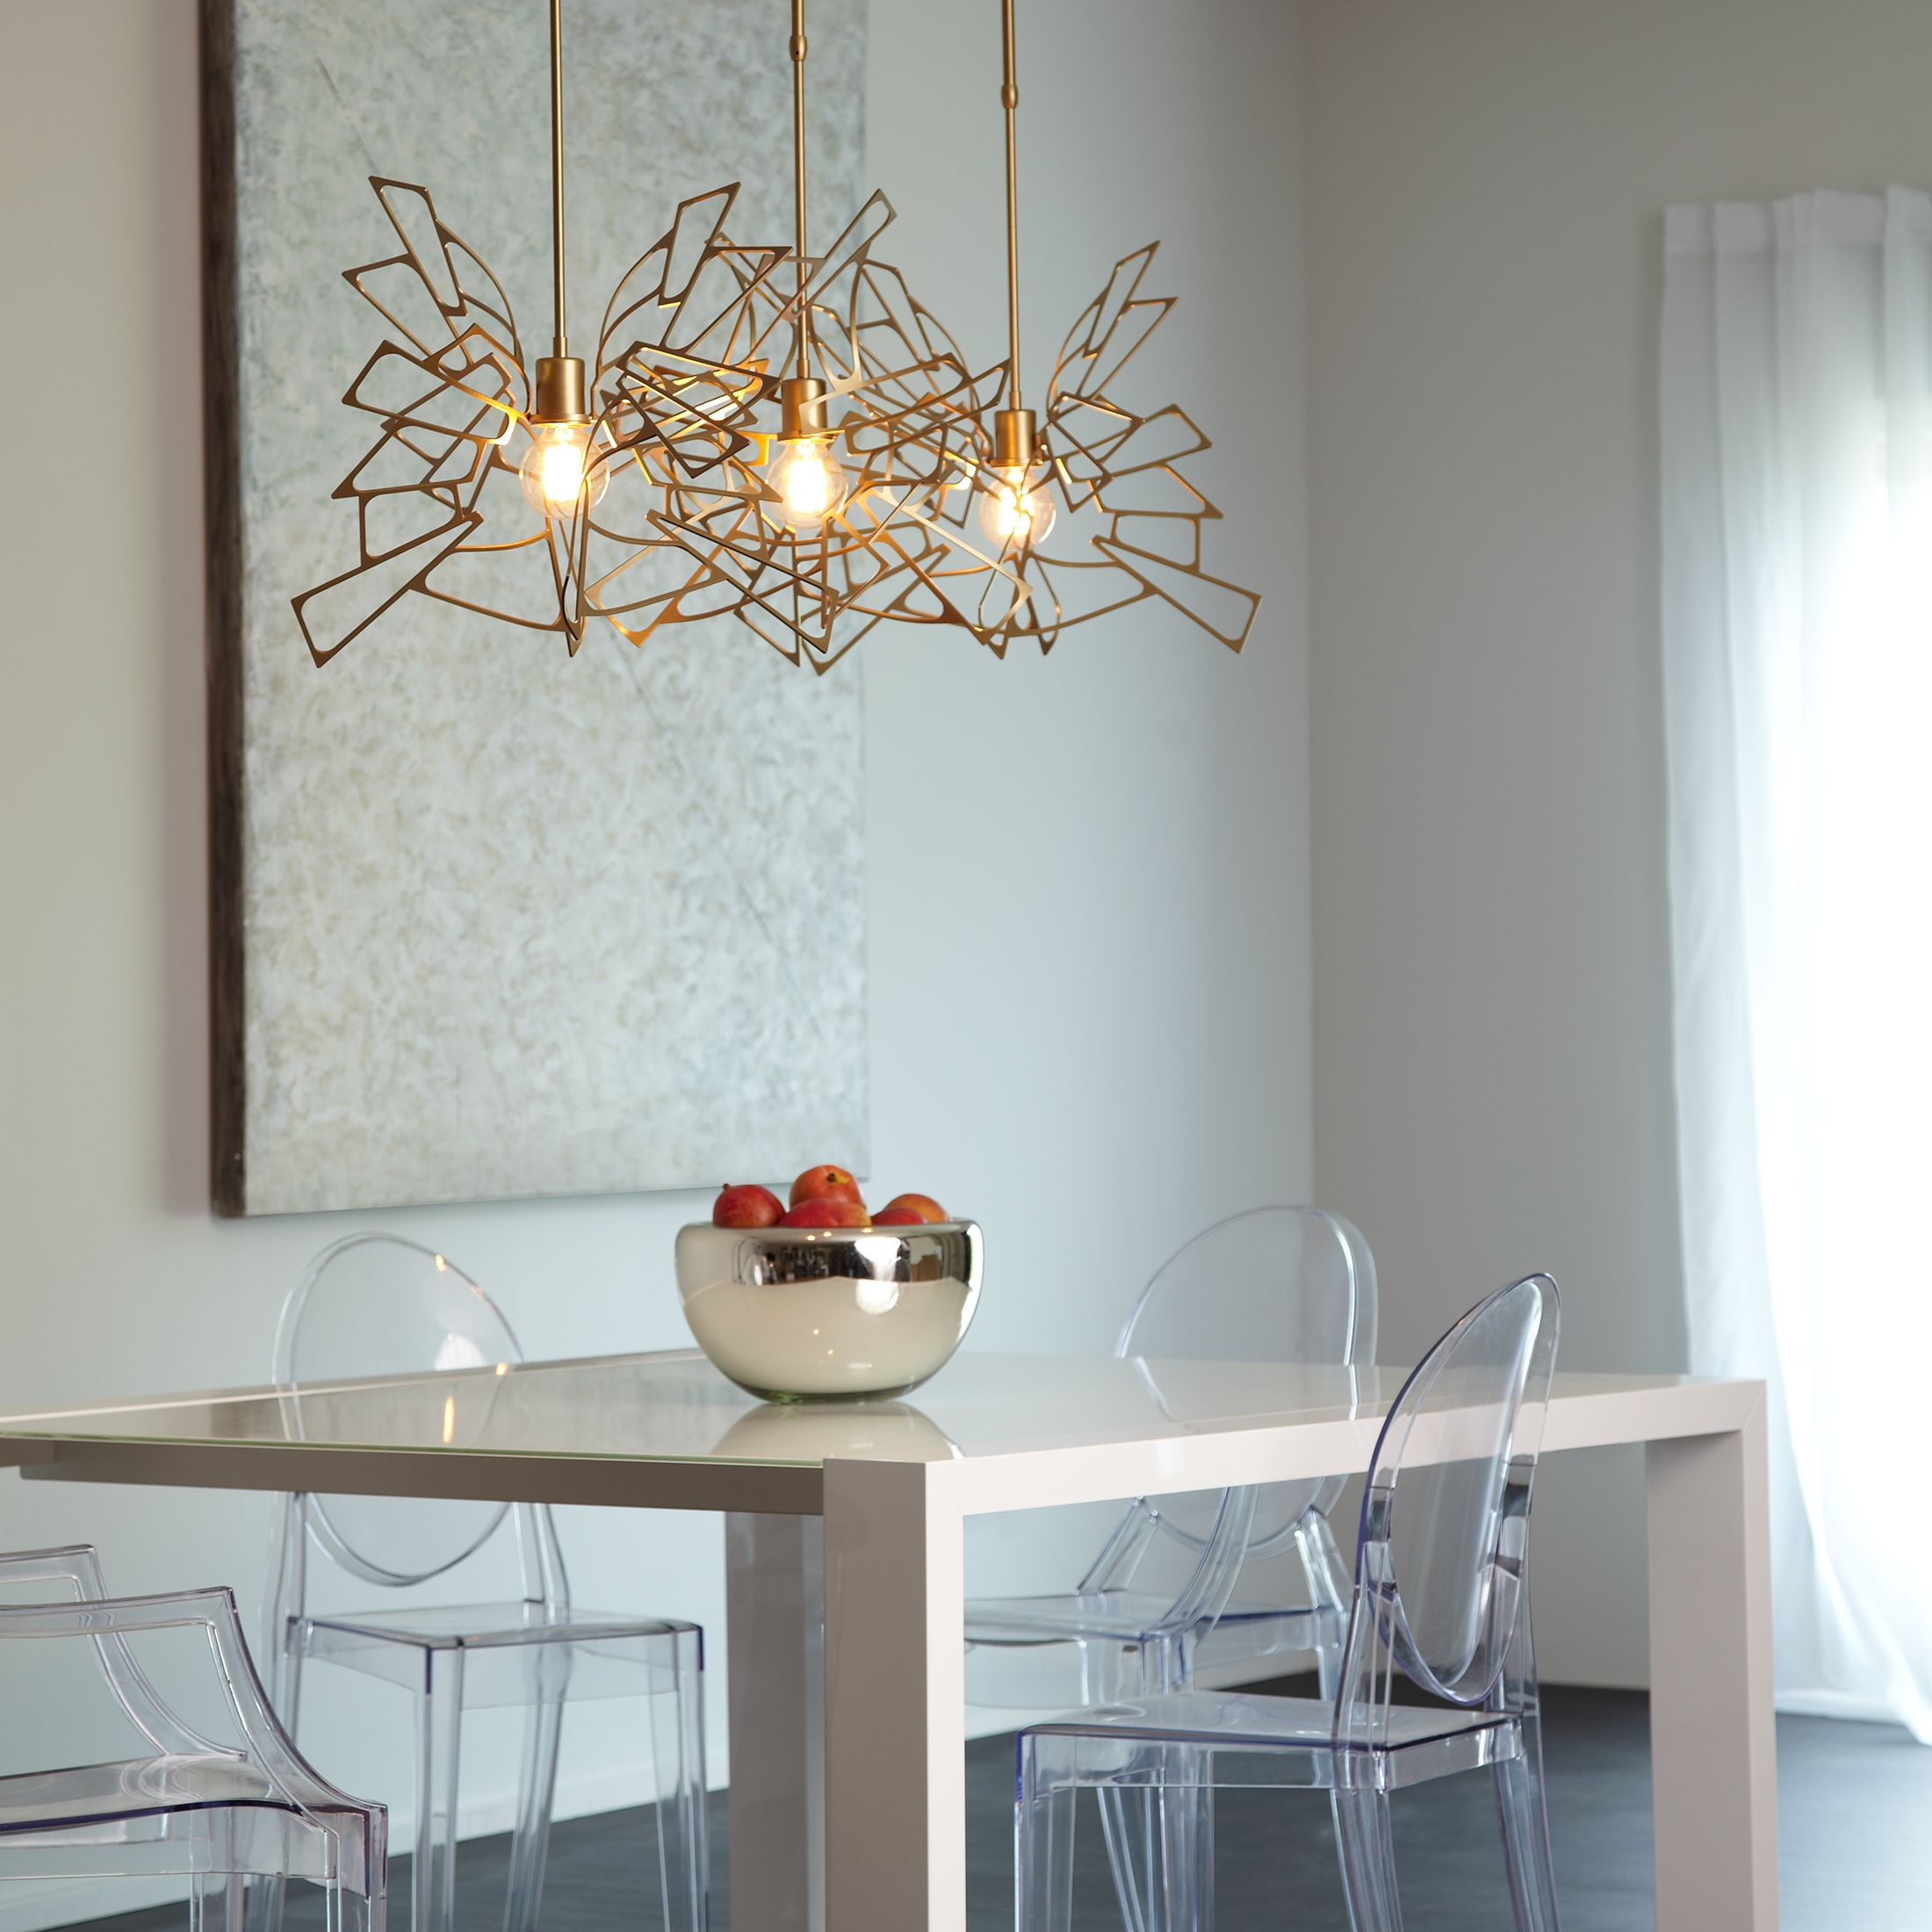 monarch 3 light multipoint pendant light from vermont modern by hubbardton forge ylighting - Hubbardton Forge